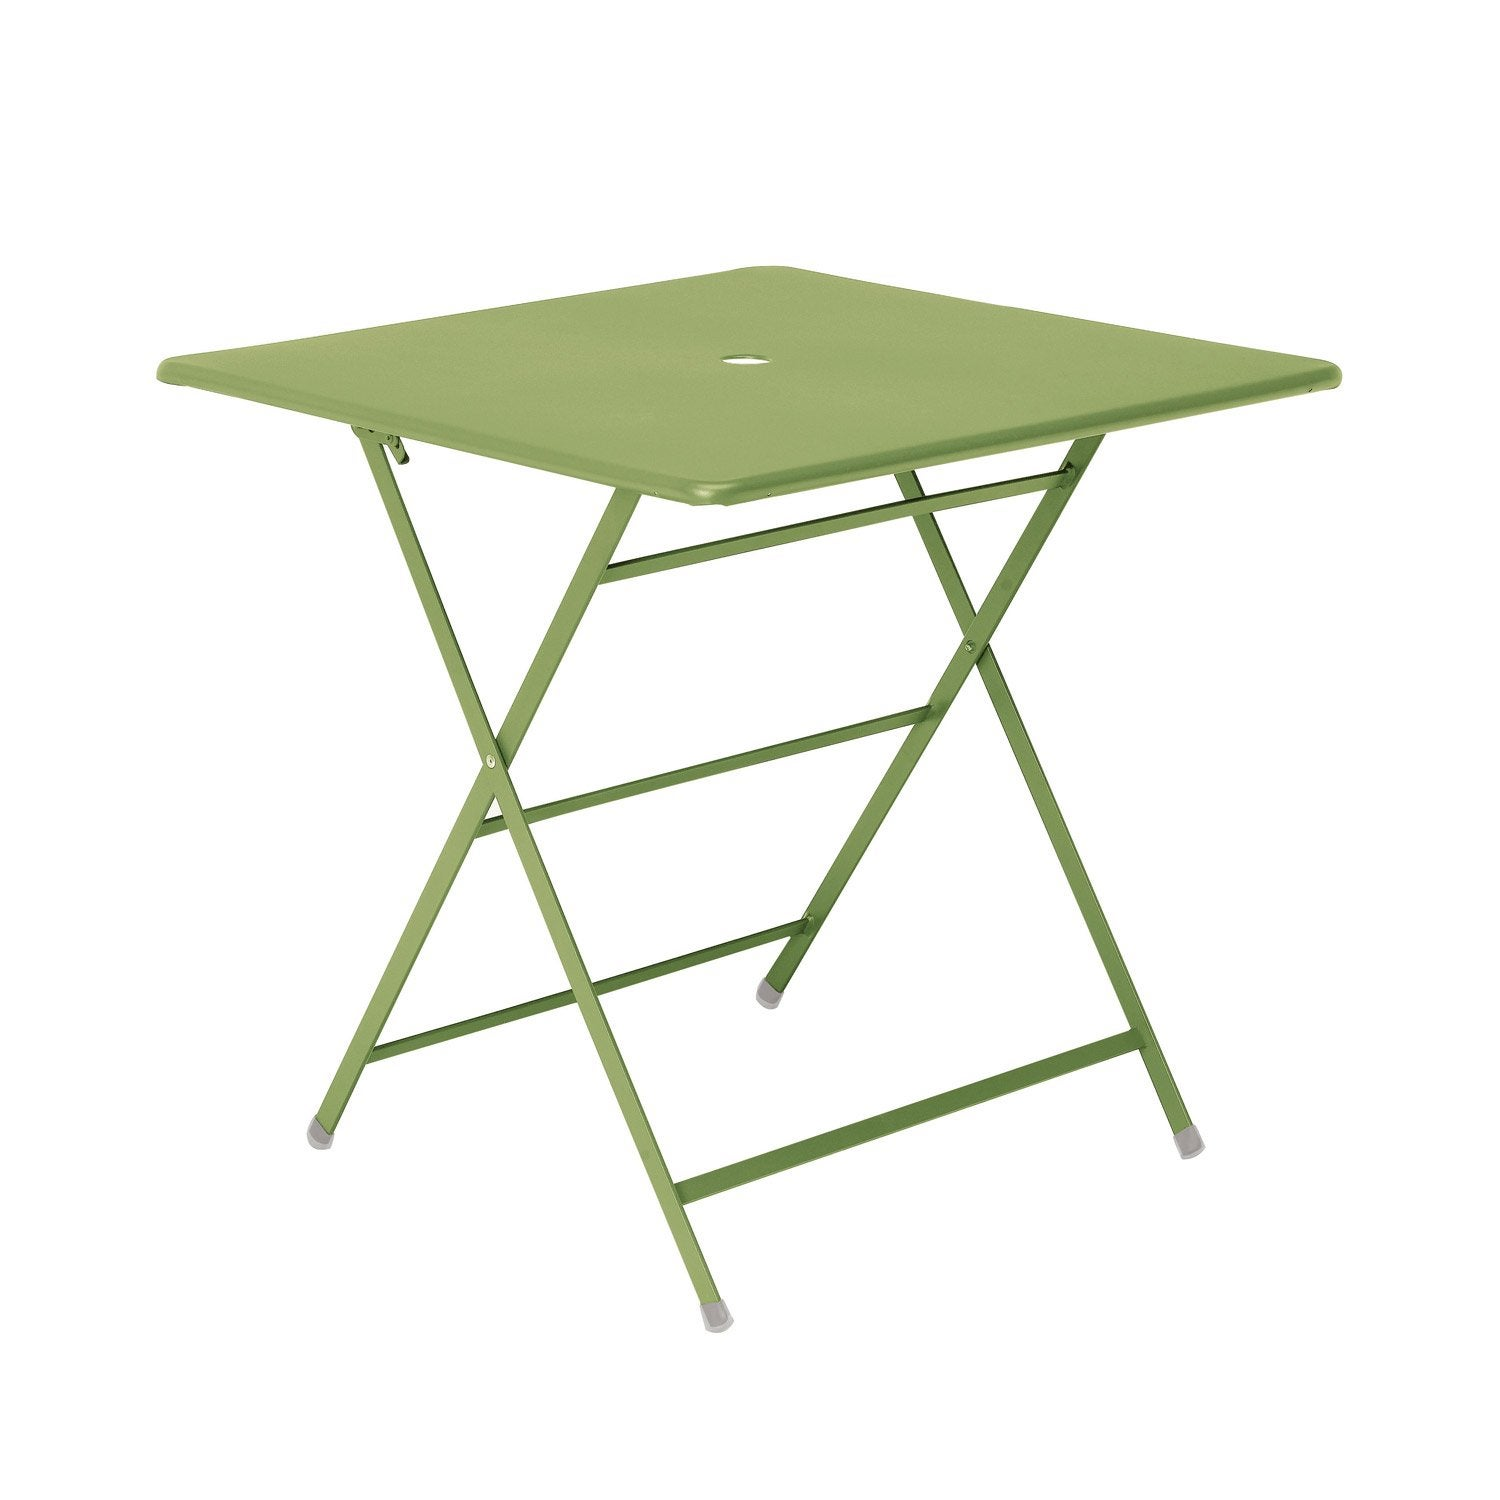 Table de jardin carr e cassis oasi by emu leroy merlin - Leroy merlin table pliante ...